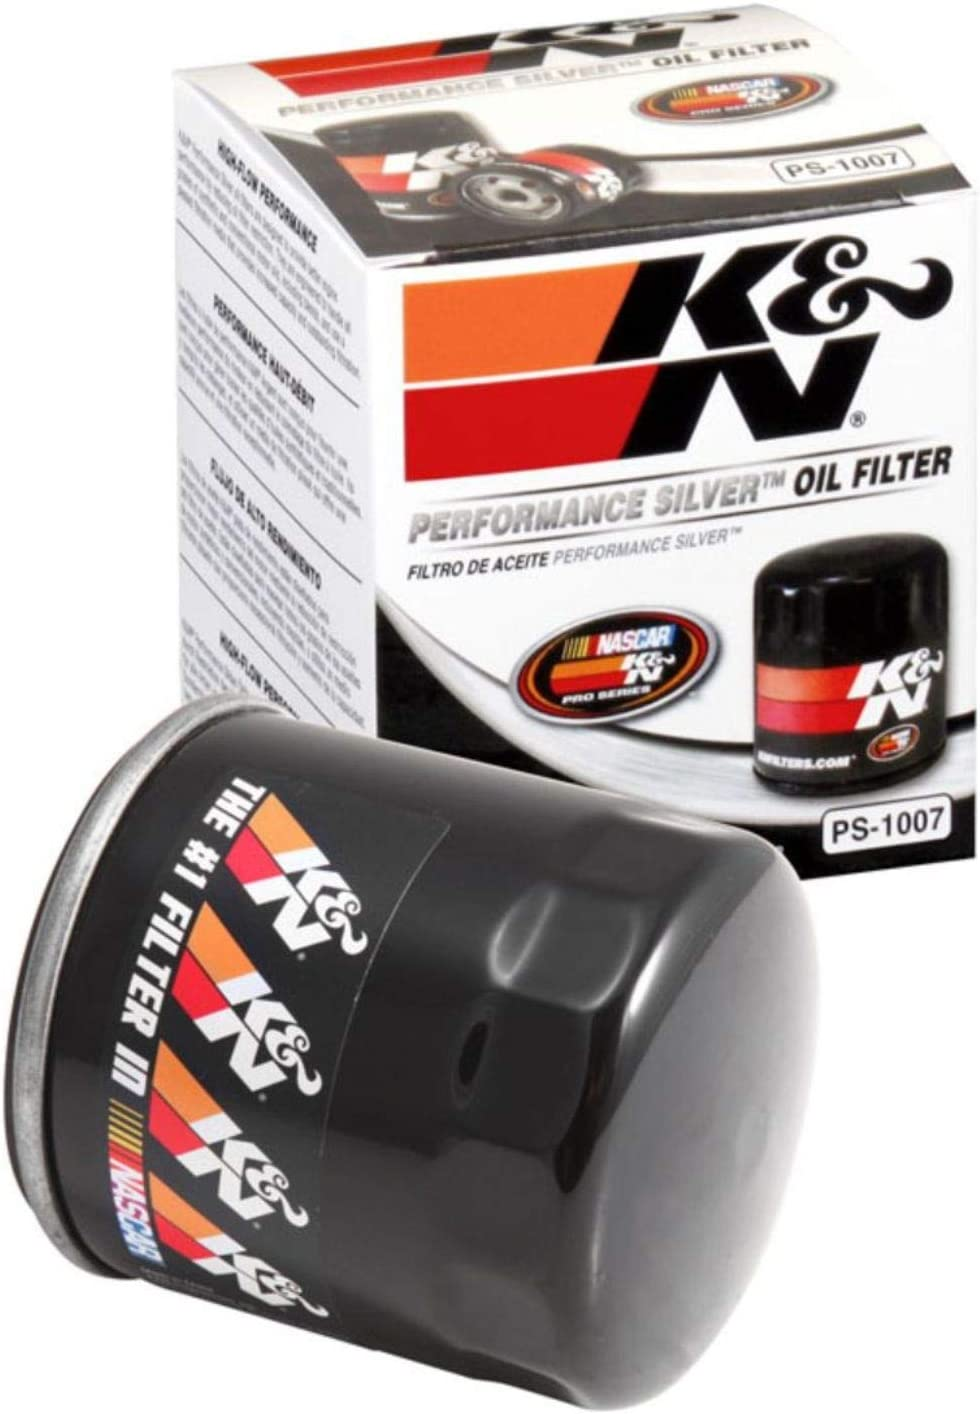 K&N Premium Oil Filter: Designed to Protect your Engine: Fits Select CHEVROLET/GMC/ISUZU/BUICK Vehicle Models (See Product Description for Full List of Compatible Vehicles), PS-1007